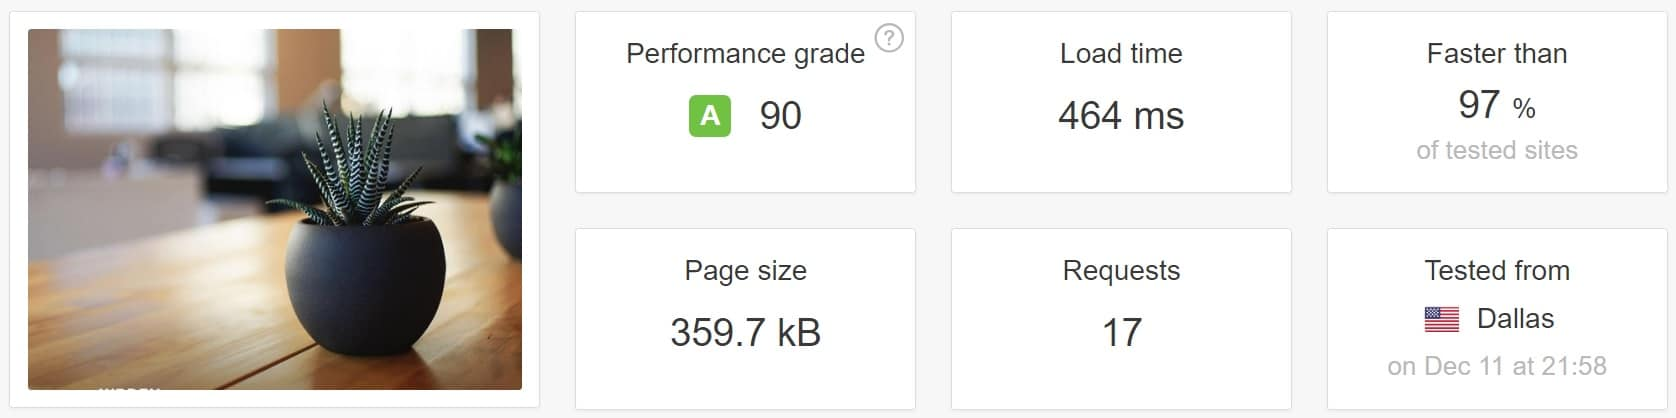 before pagespeed optimizations speed test kinsta